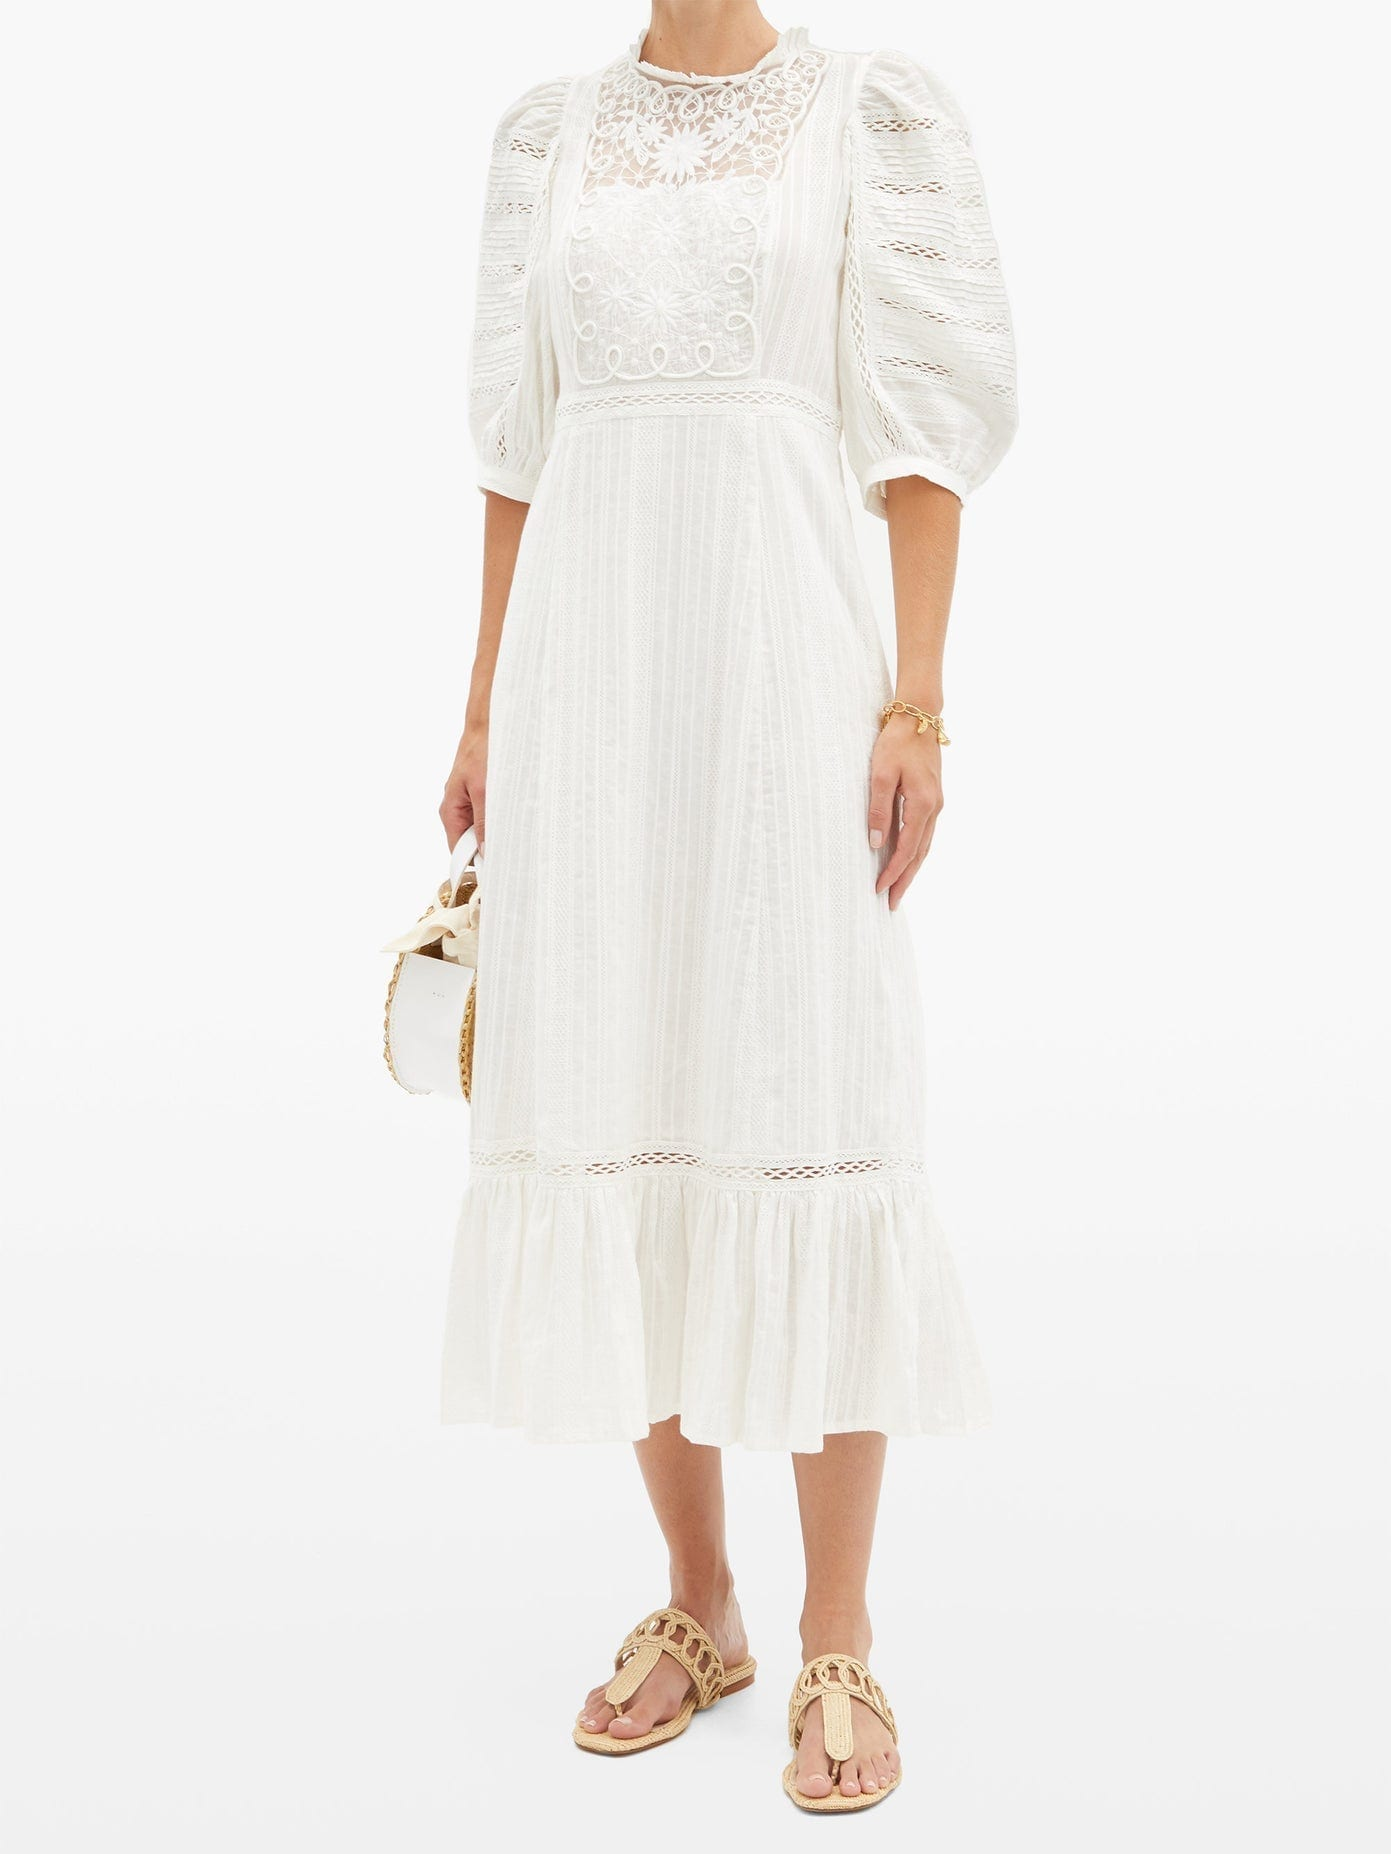 SEA Ona Embroidered Cotton-voile Dress